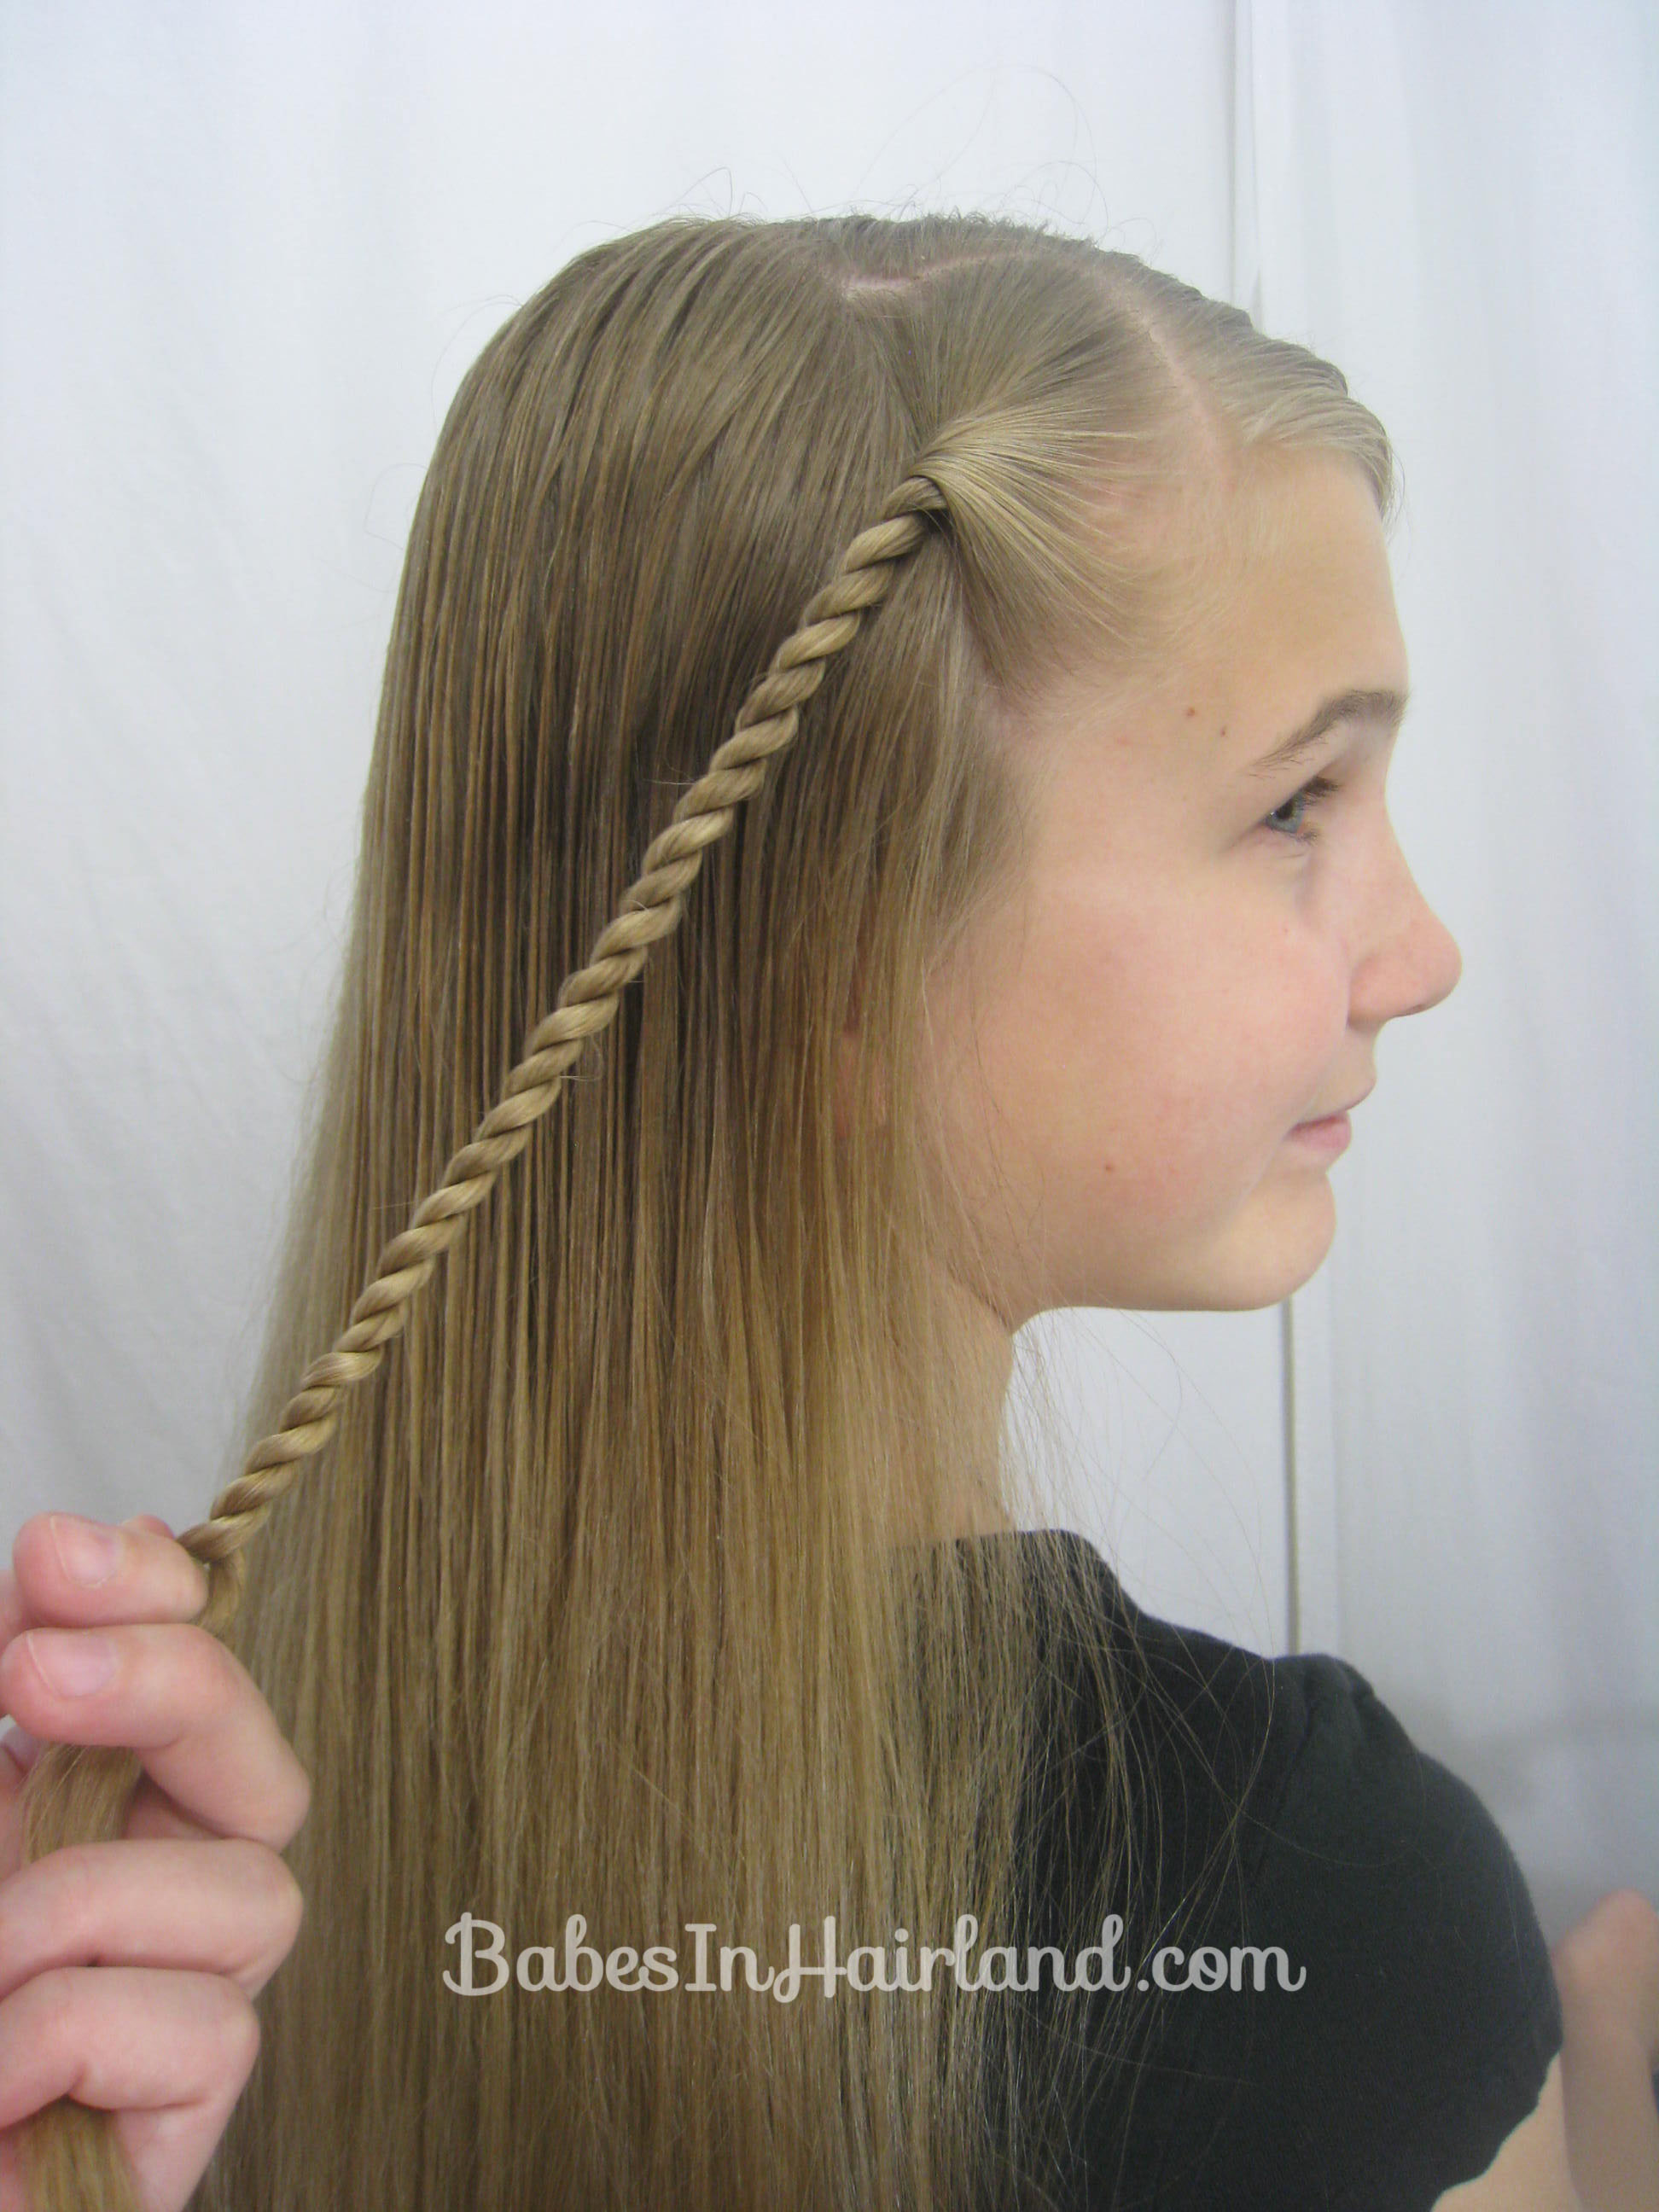 Rope Braid Hairstyle Babes In Hairland